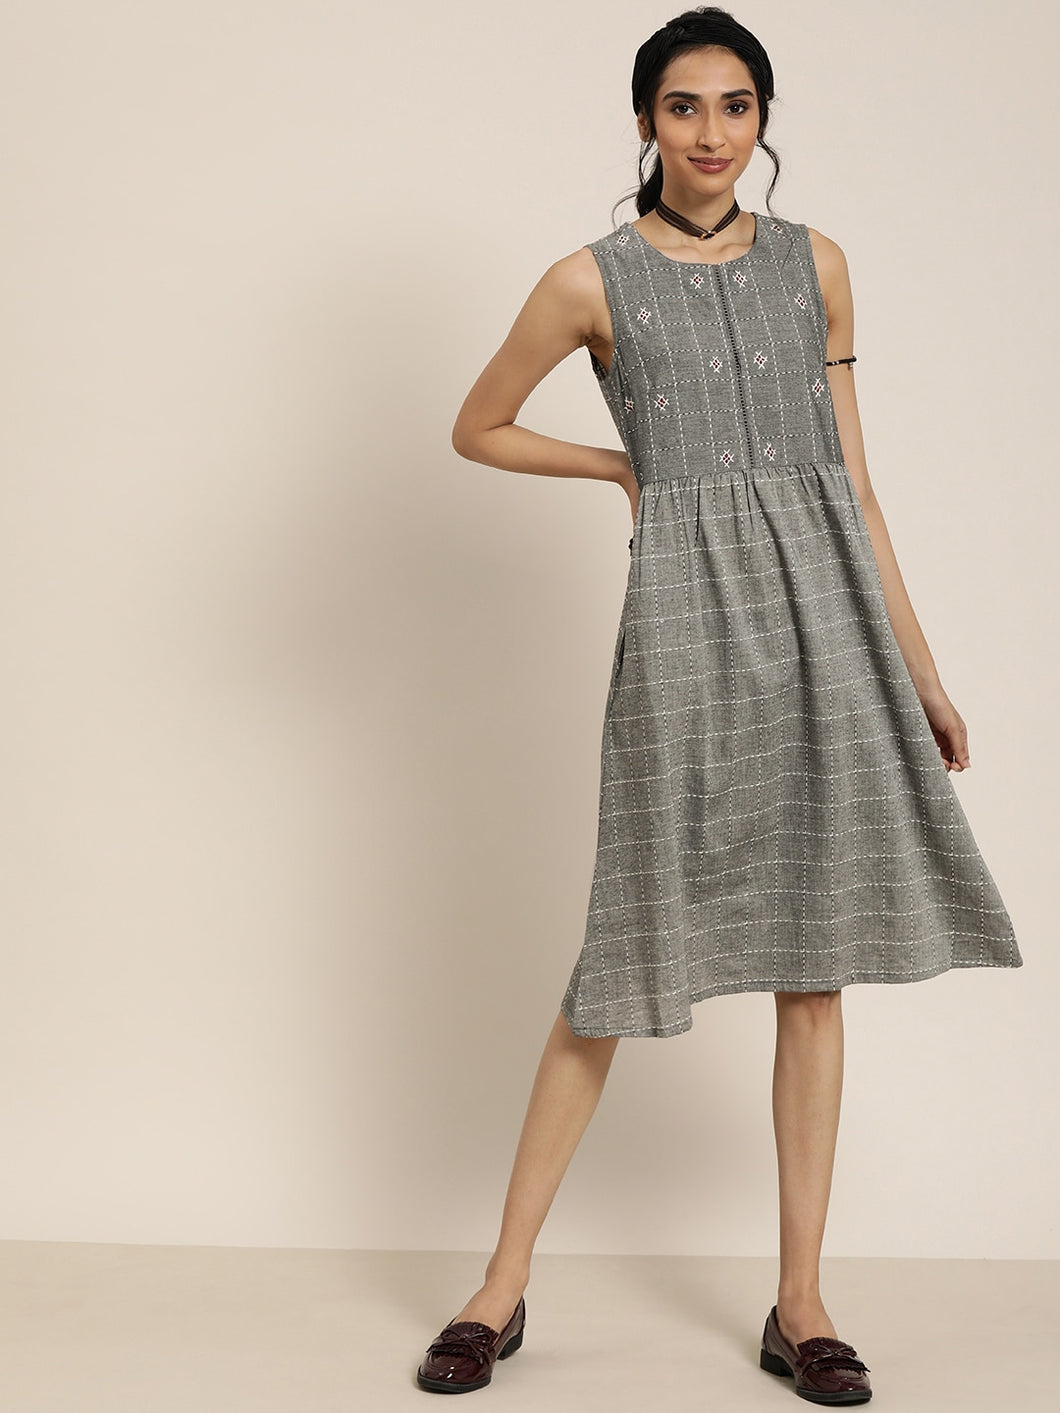 Queen ellie Women Grey & White Lambani Checked A-Line Dress With Embroidered Detail